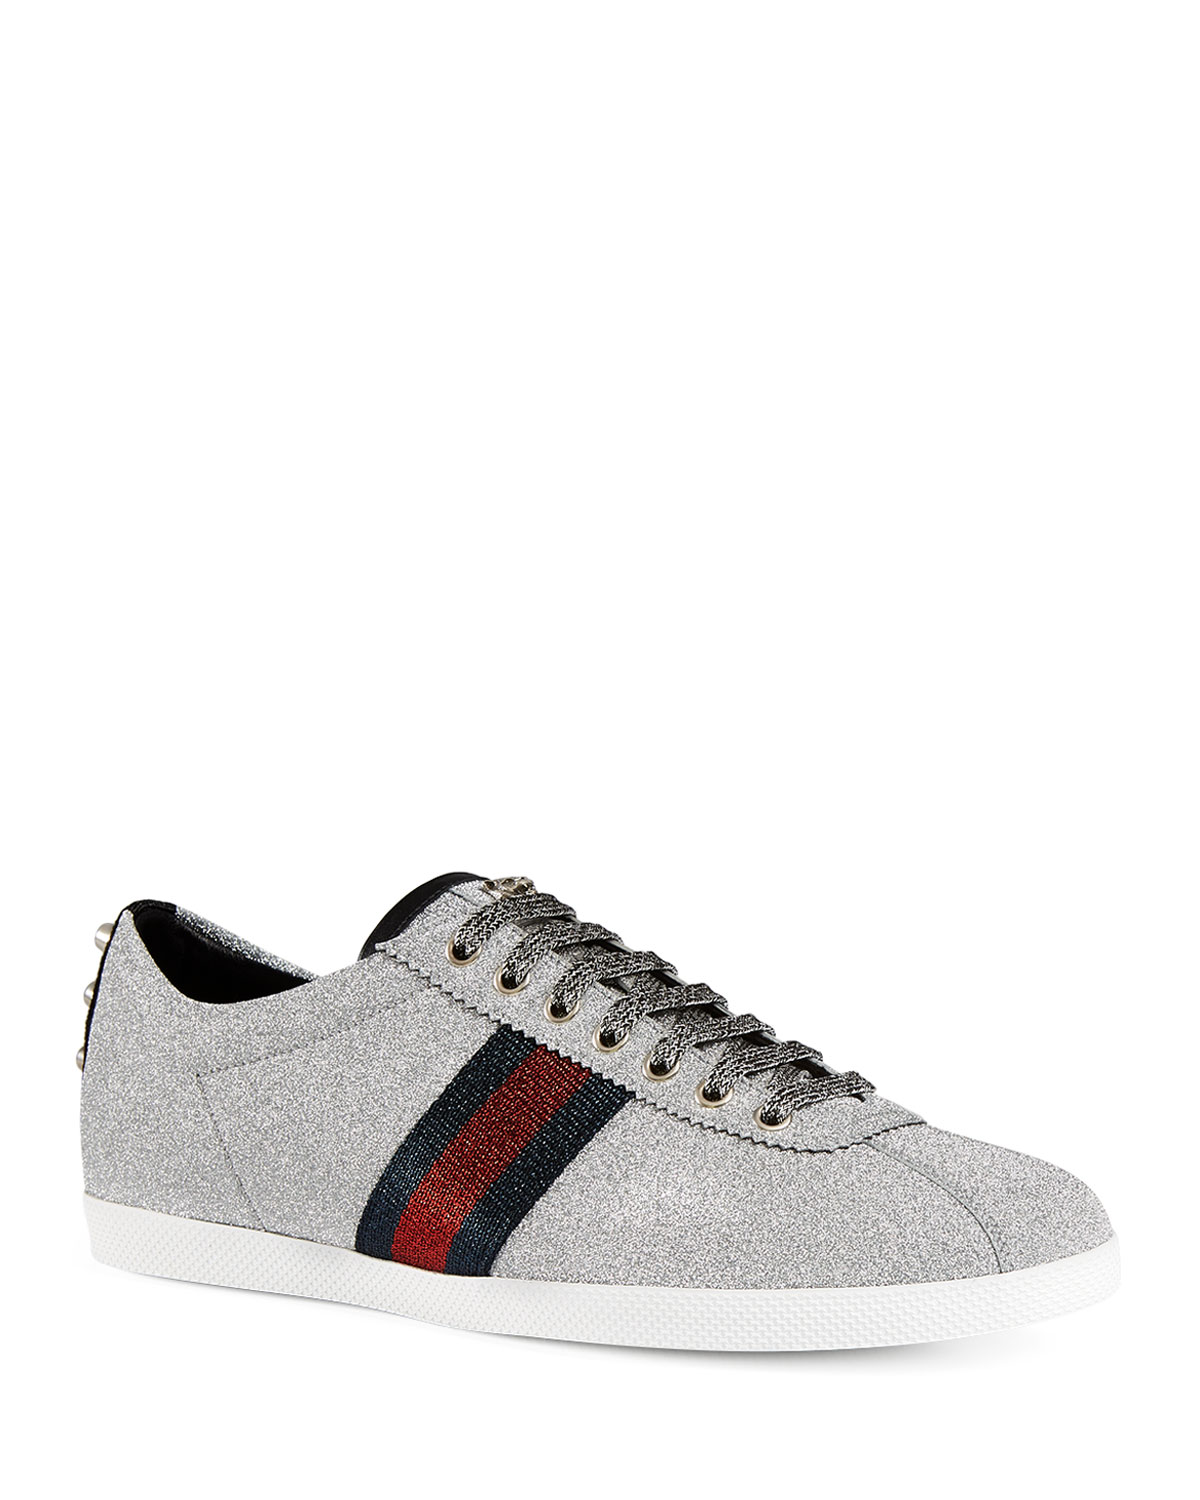 0cf079d35 Gucci Men's Bambi Web Low-Top Sneakers with Stud Detail, Silver ...